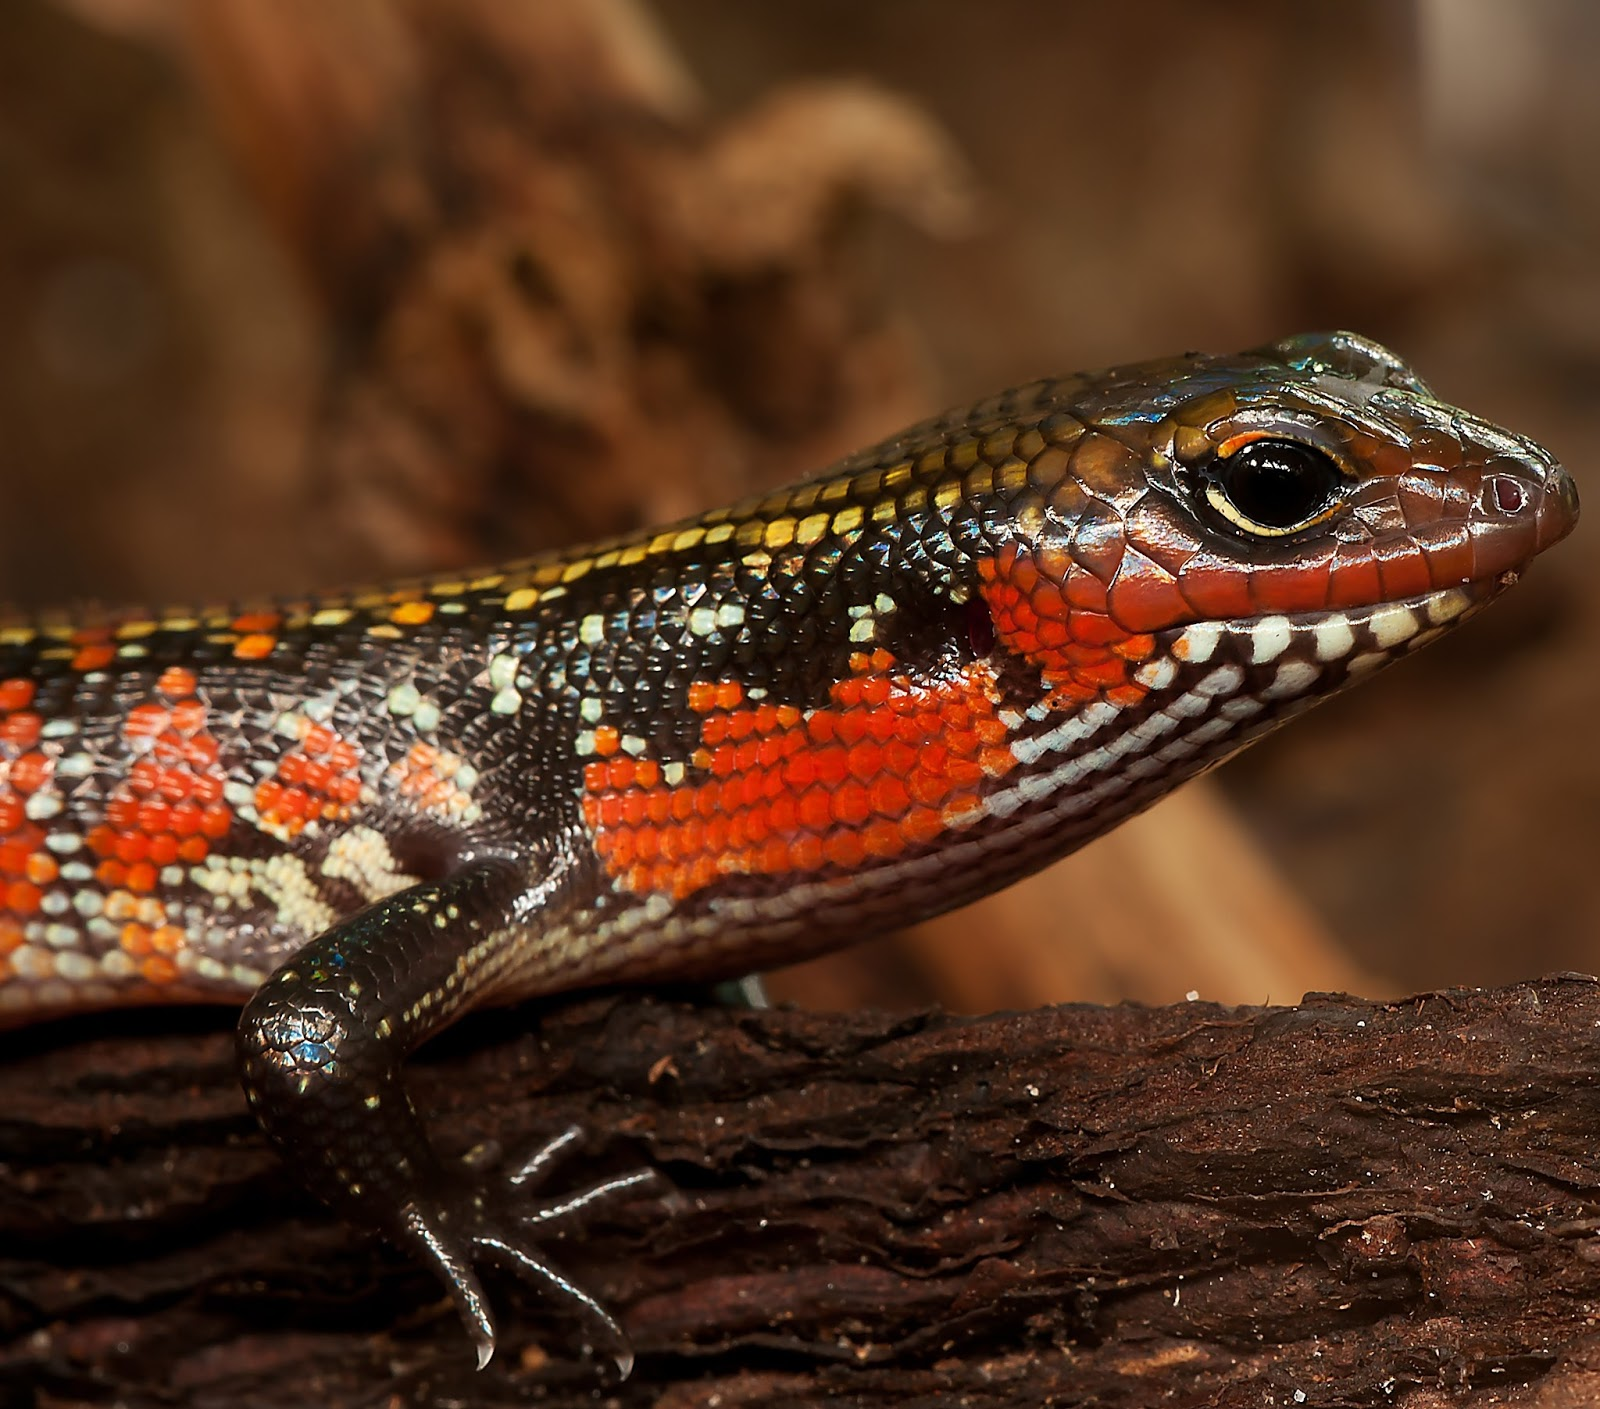 An image of a skink lizard.